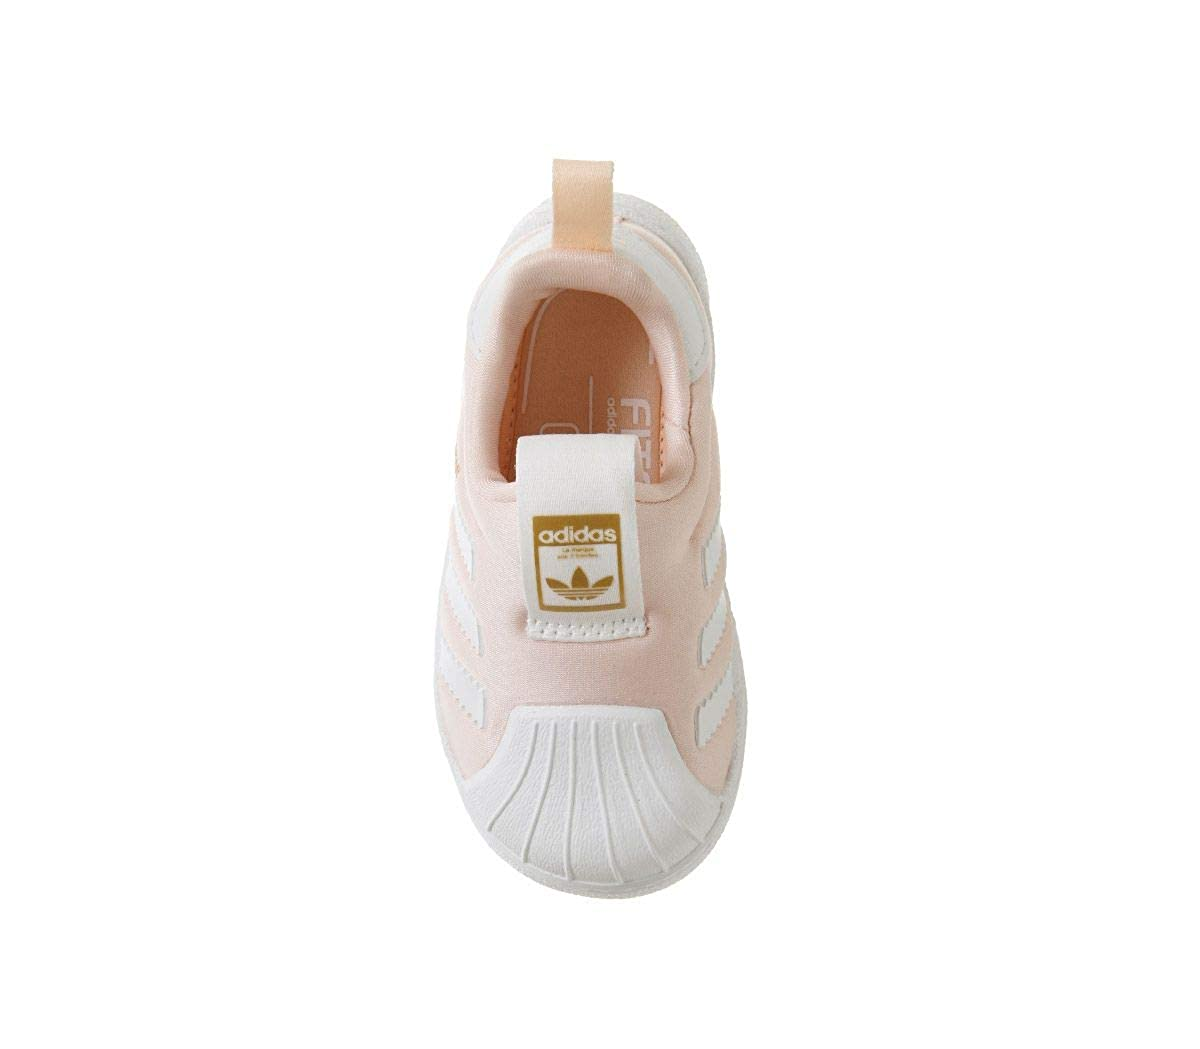 1d76d20e1e275 adidas Superstar 360 I, Unisex Kids' Low-Top Slippers: Amazon.co.uk: Shoes  & Bags